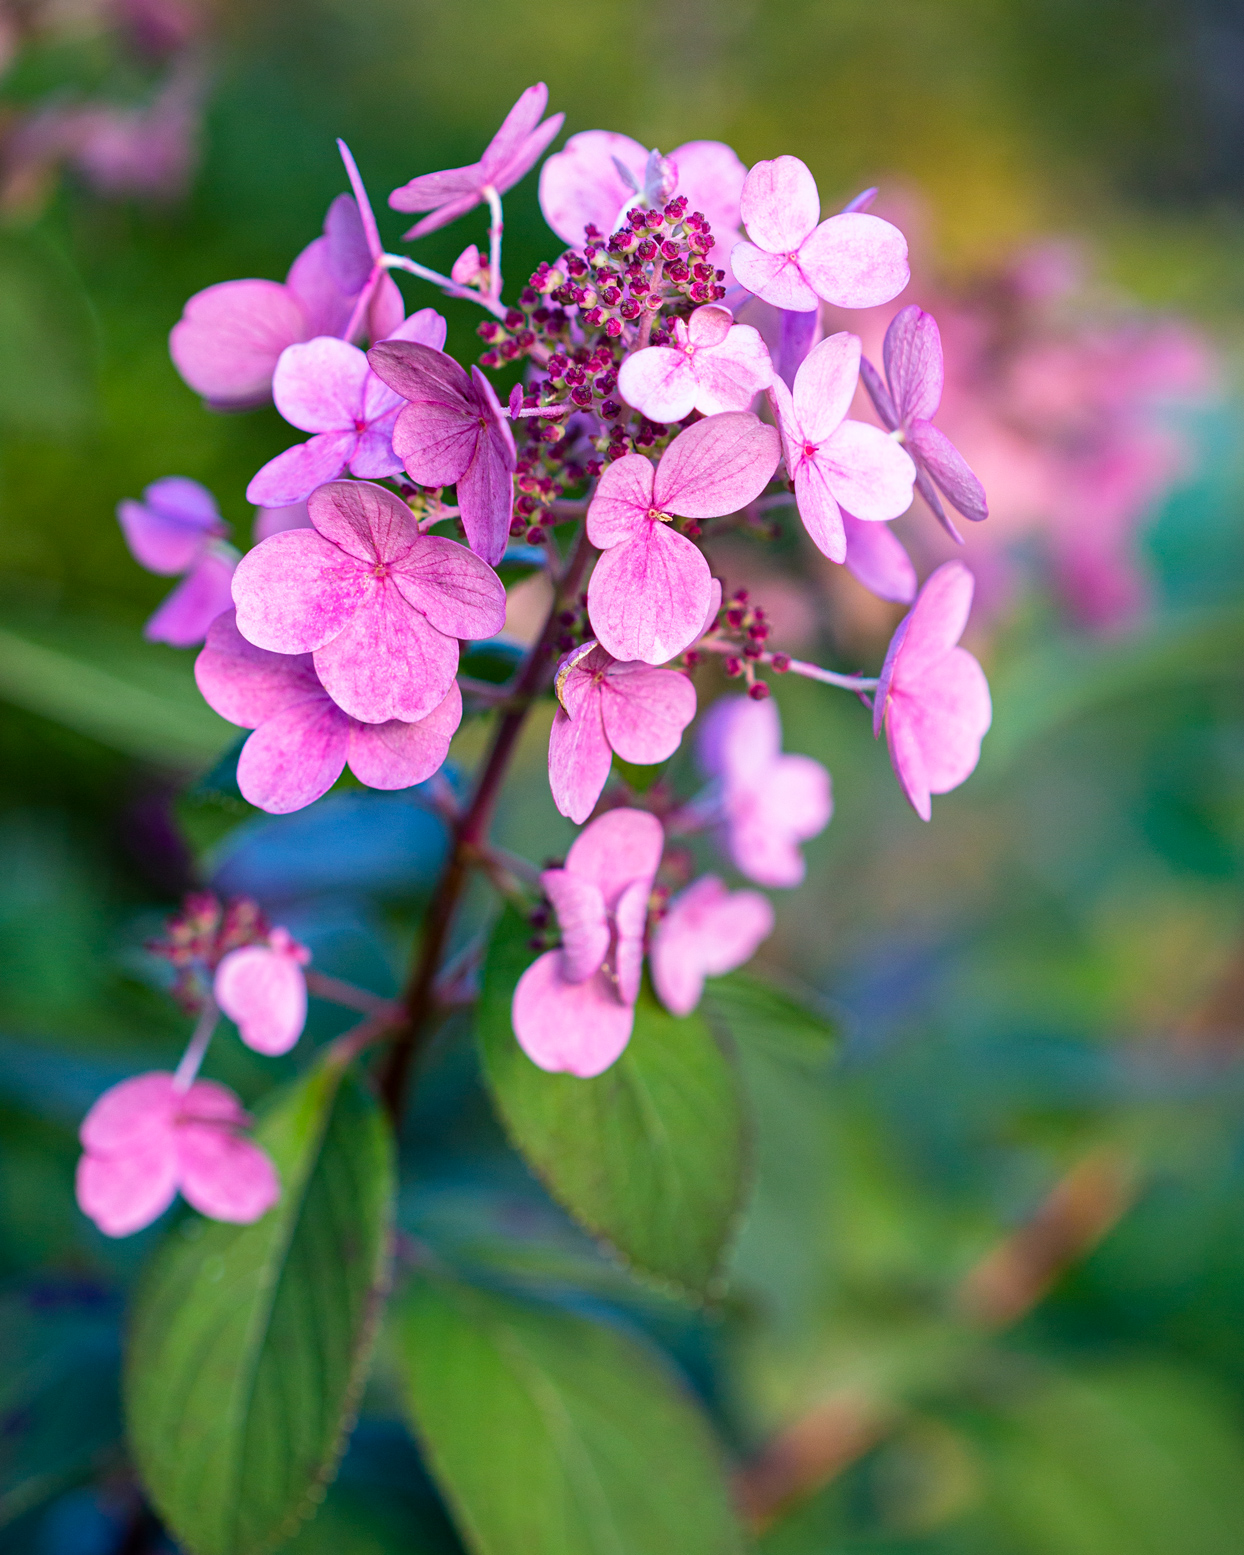 pink and pink 'quick fire' hydrangeas